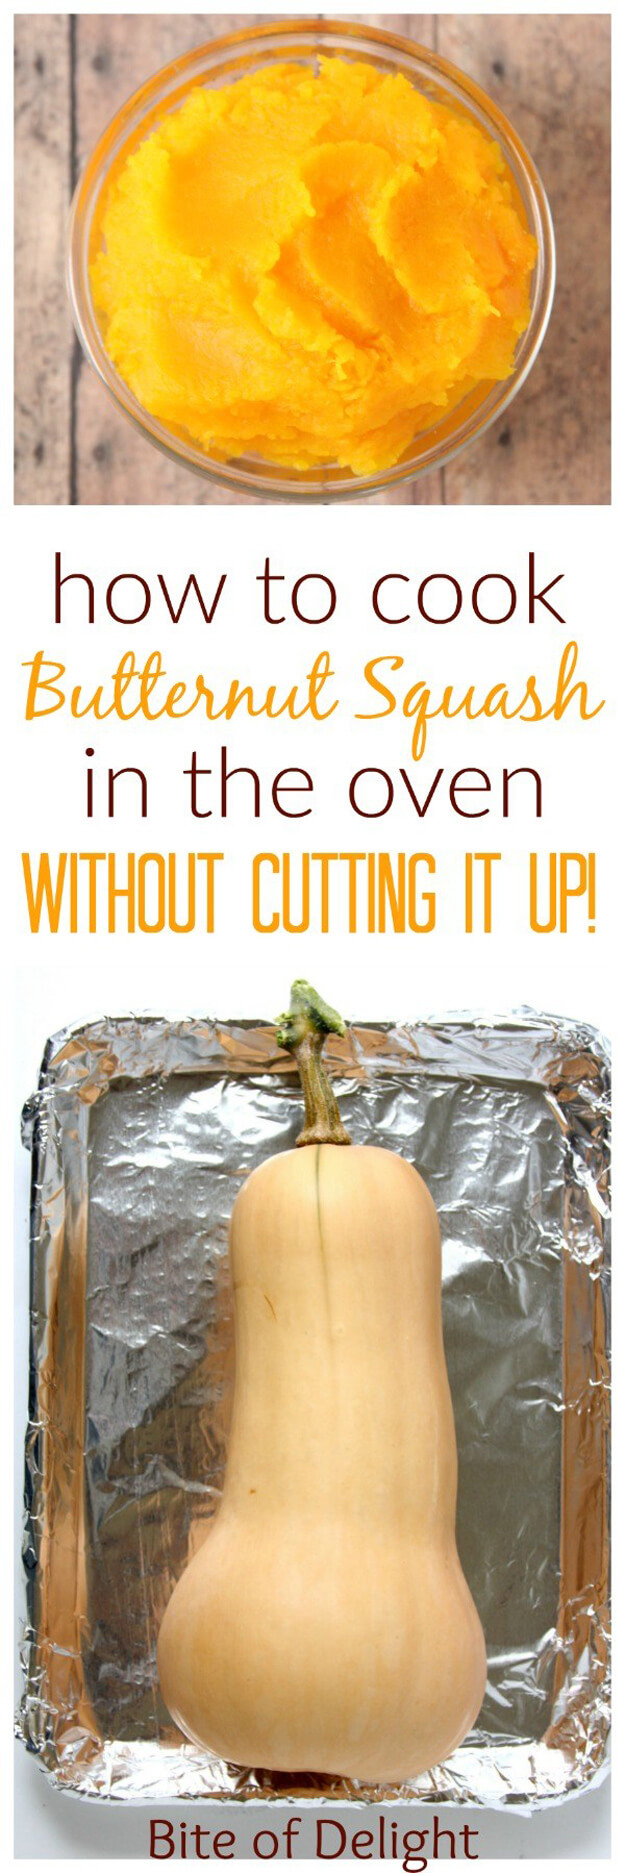 Cook Butternut Squash Without Cutting It